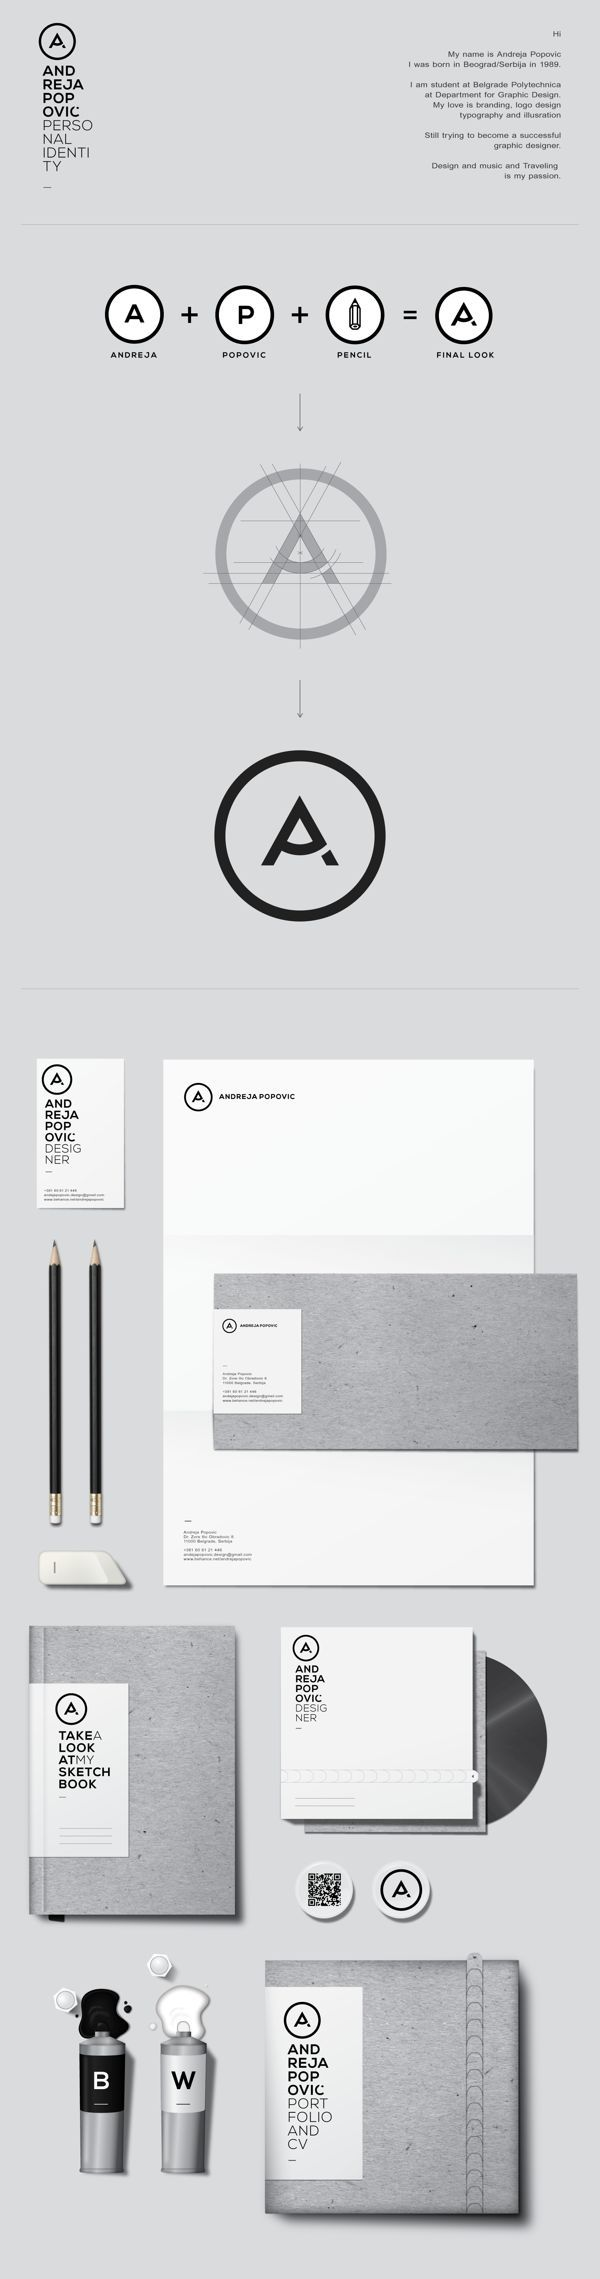 Cool Brand Identity Design. ANDREJA POPOVIĆ. #branding #brandidentity [http://www.pinterest.com/alfredchong/]. If you like UX, design, or design thinking, check out theuxblog.com podcast https://itunes.apple.com/us/podcast/ux-blog-user-experience-design/id1127946001?mt=2